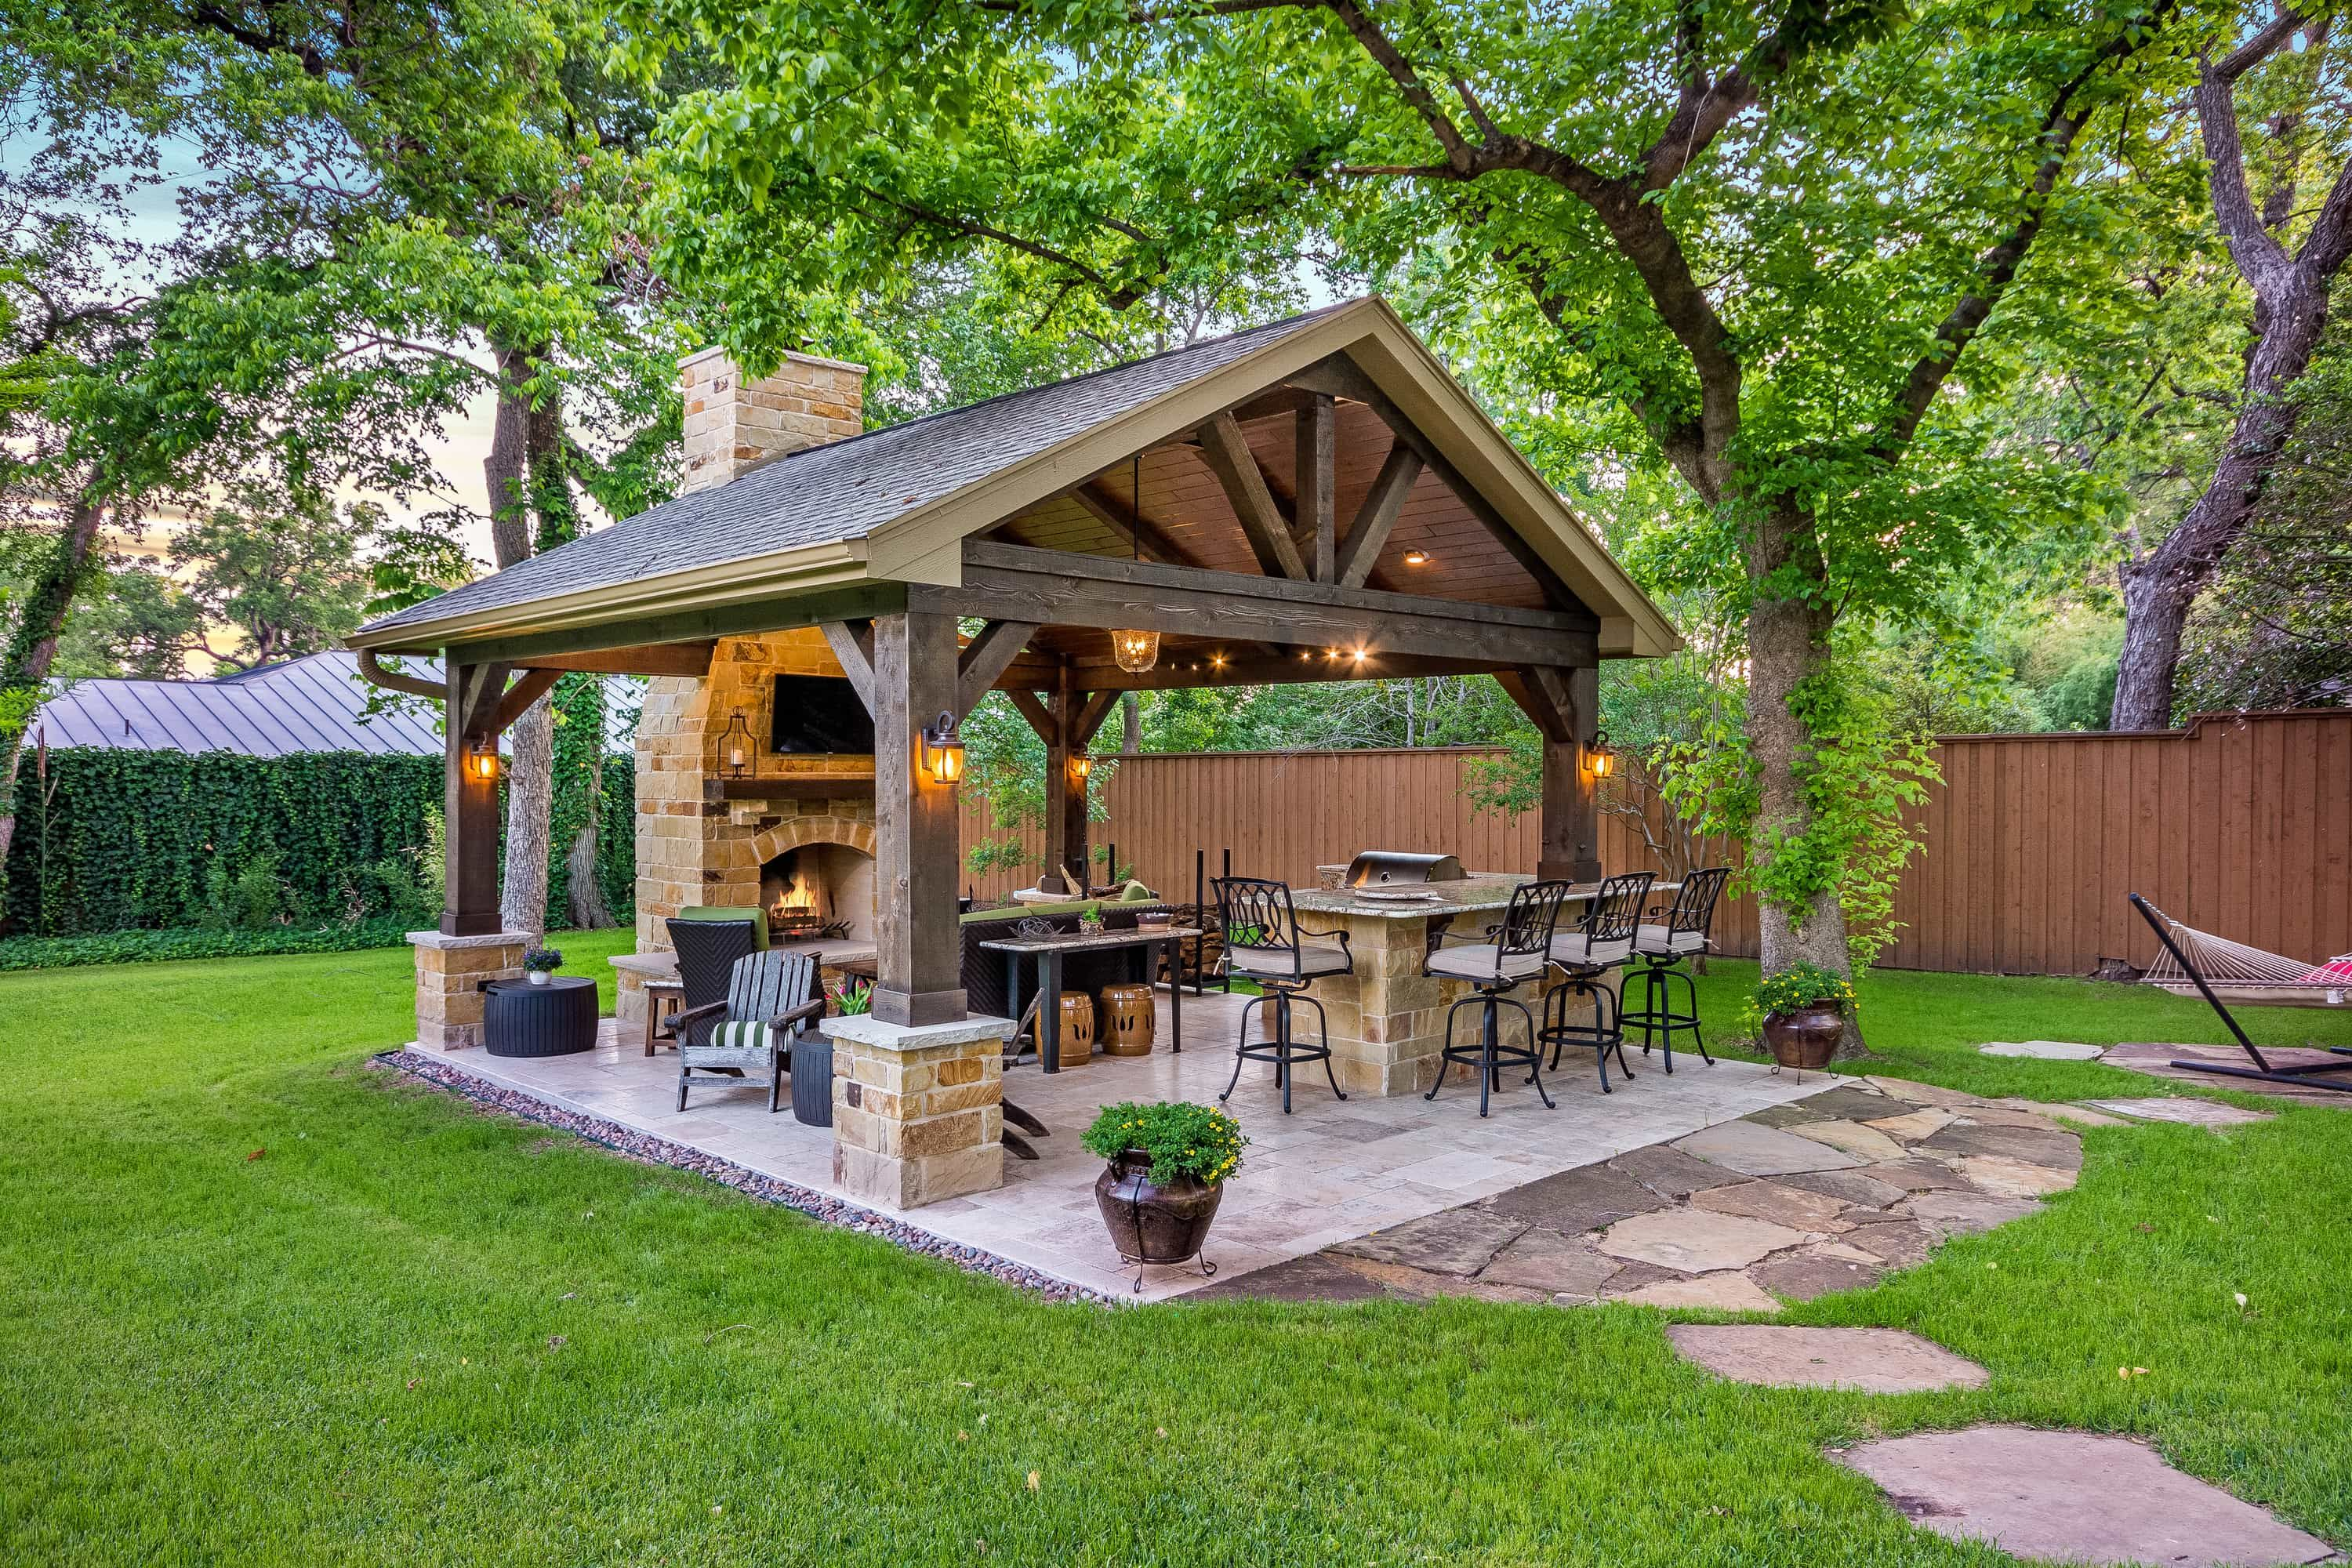 This Freestanding Covered Patio With An Outdoor Kitchen And Fireplace Is  The Perfect Retreat From The Constraints Of The House.